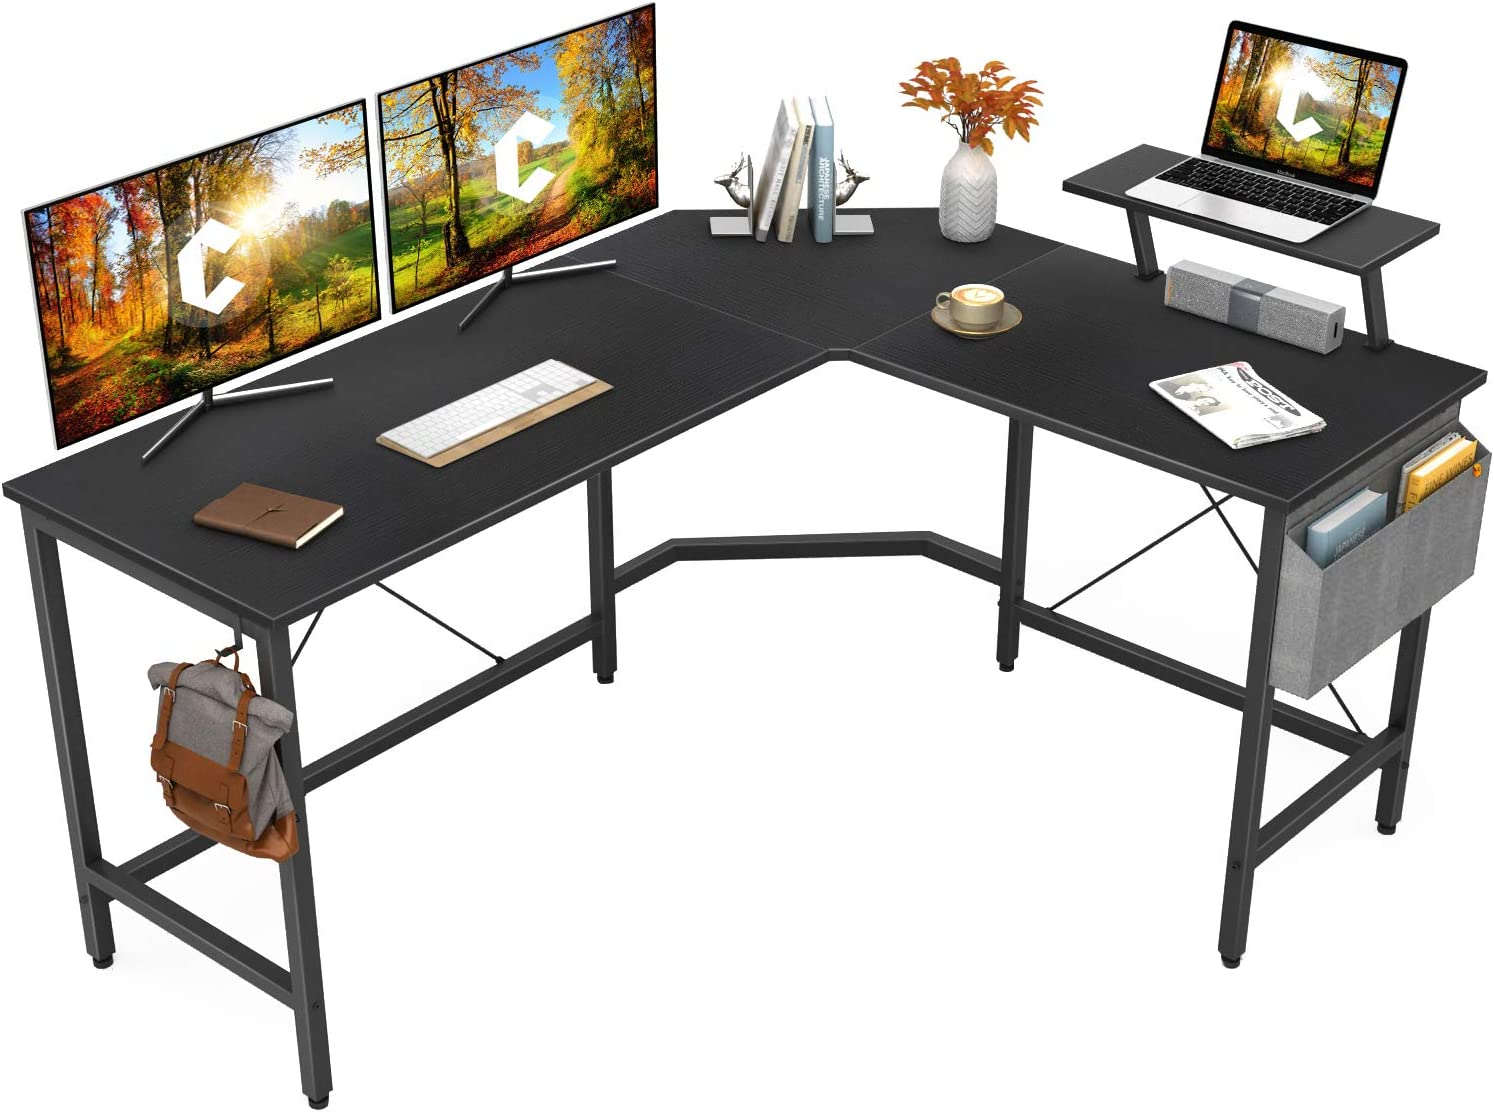 Amazon.com: Cubiker Modern L-Shaped Computer Office Desk, Corner Gaming Desk  with Monitor Stand, Home Office Study Writing Table Workstation for Small  Spaces: Kitchen & Dining